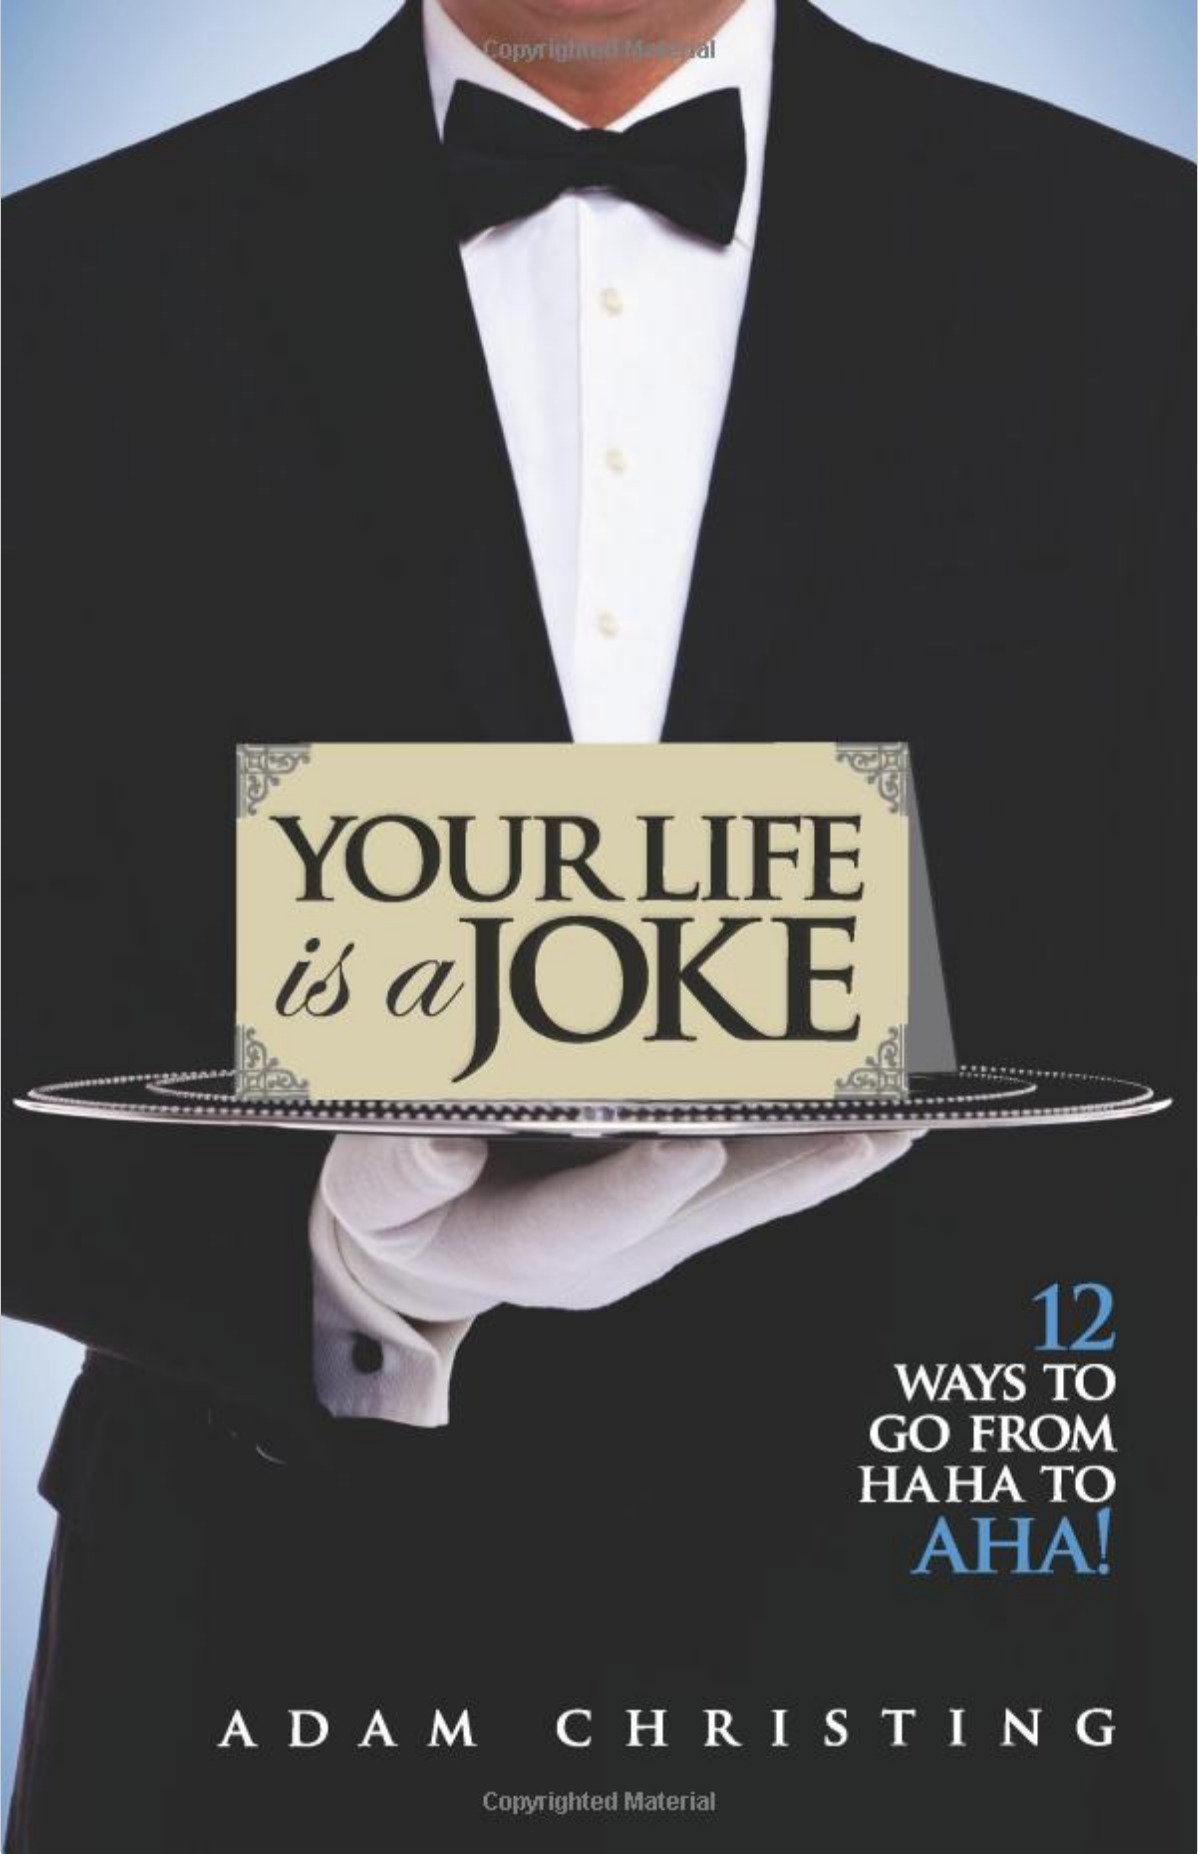 your-life-is-a-joke-funny-inspiring-authoryour-life-is-a-joke-funny-inspiring-author